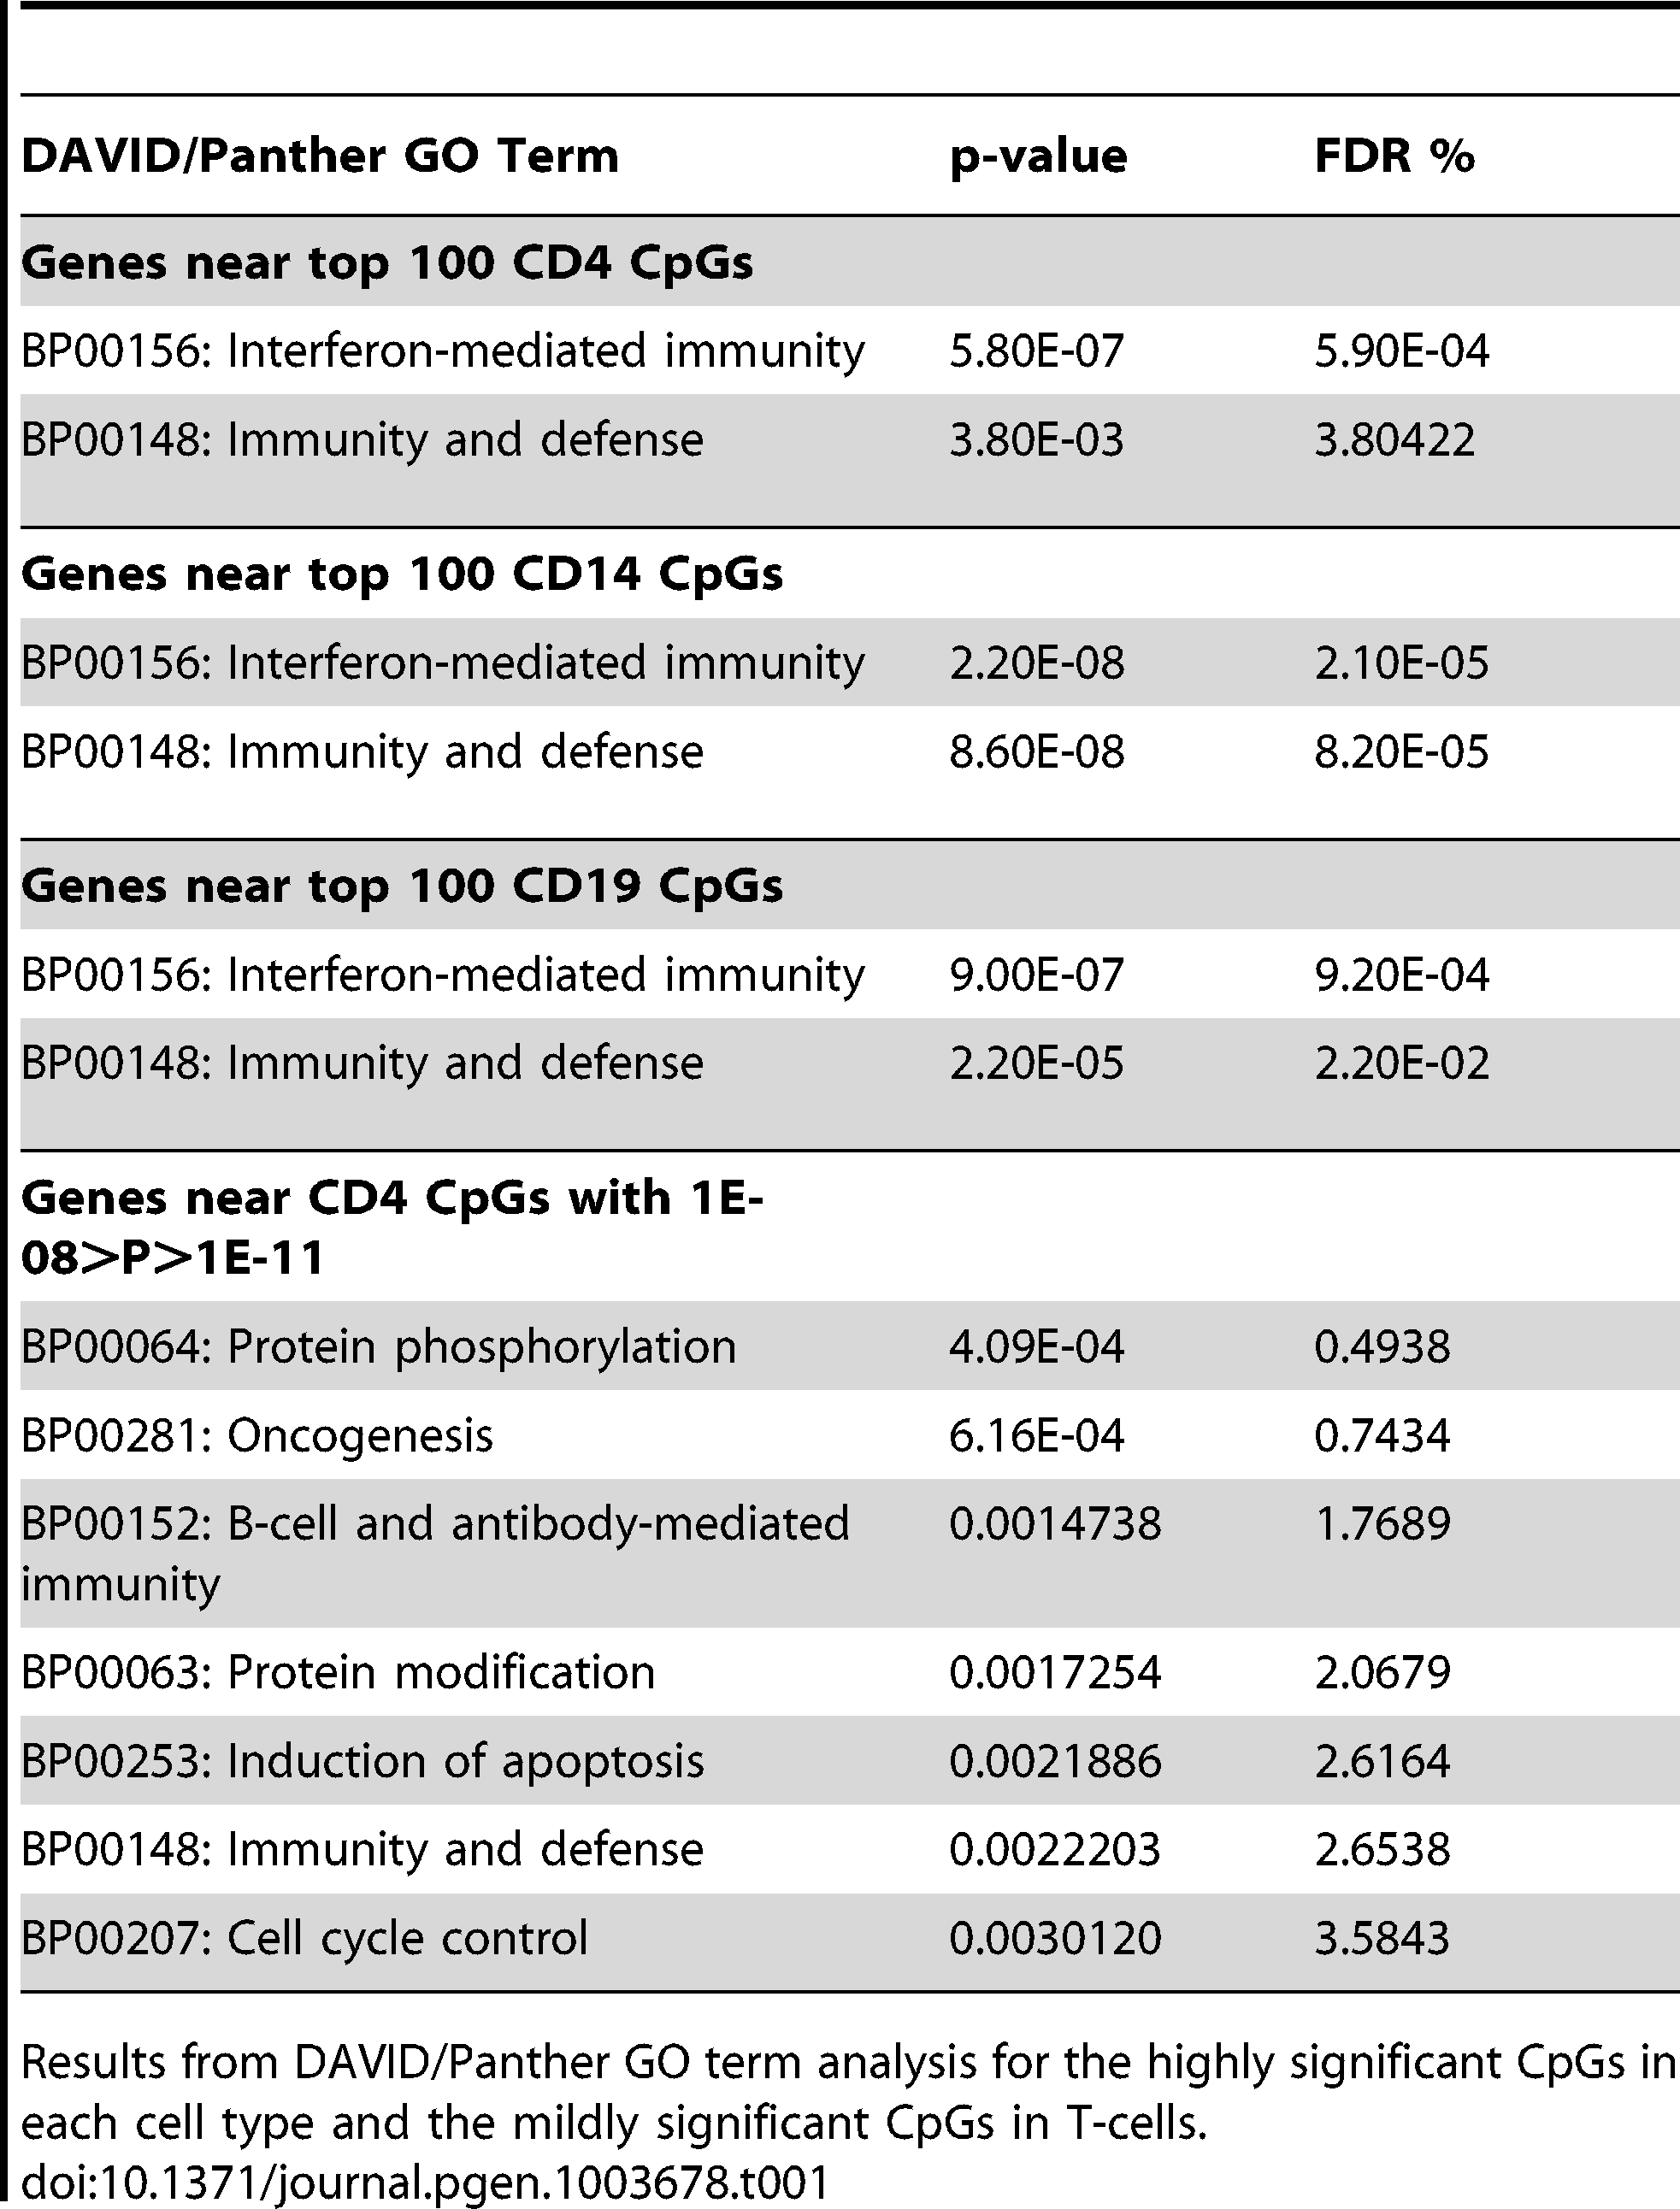 Functional analysis of significant CpGs in three cell types.